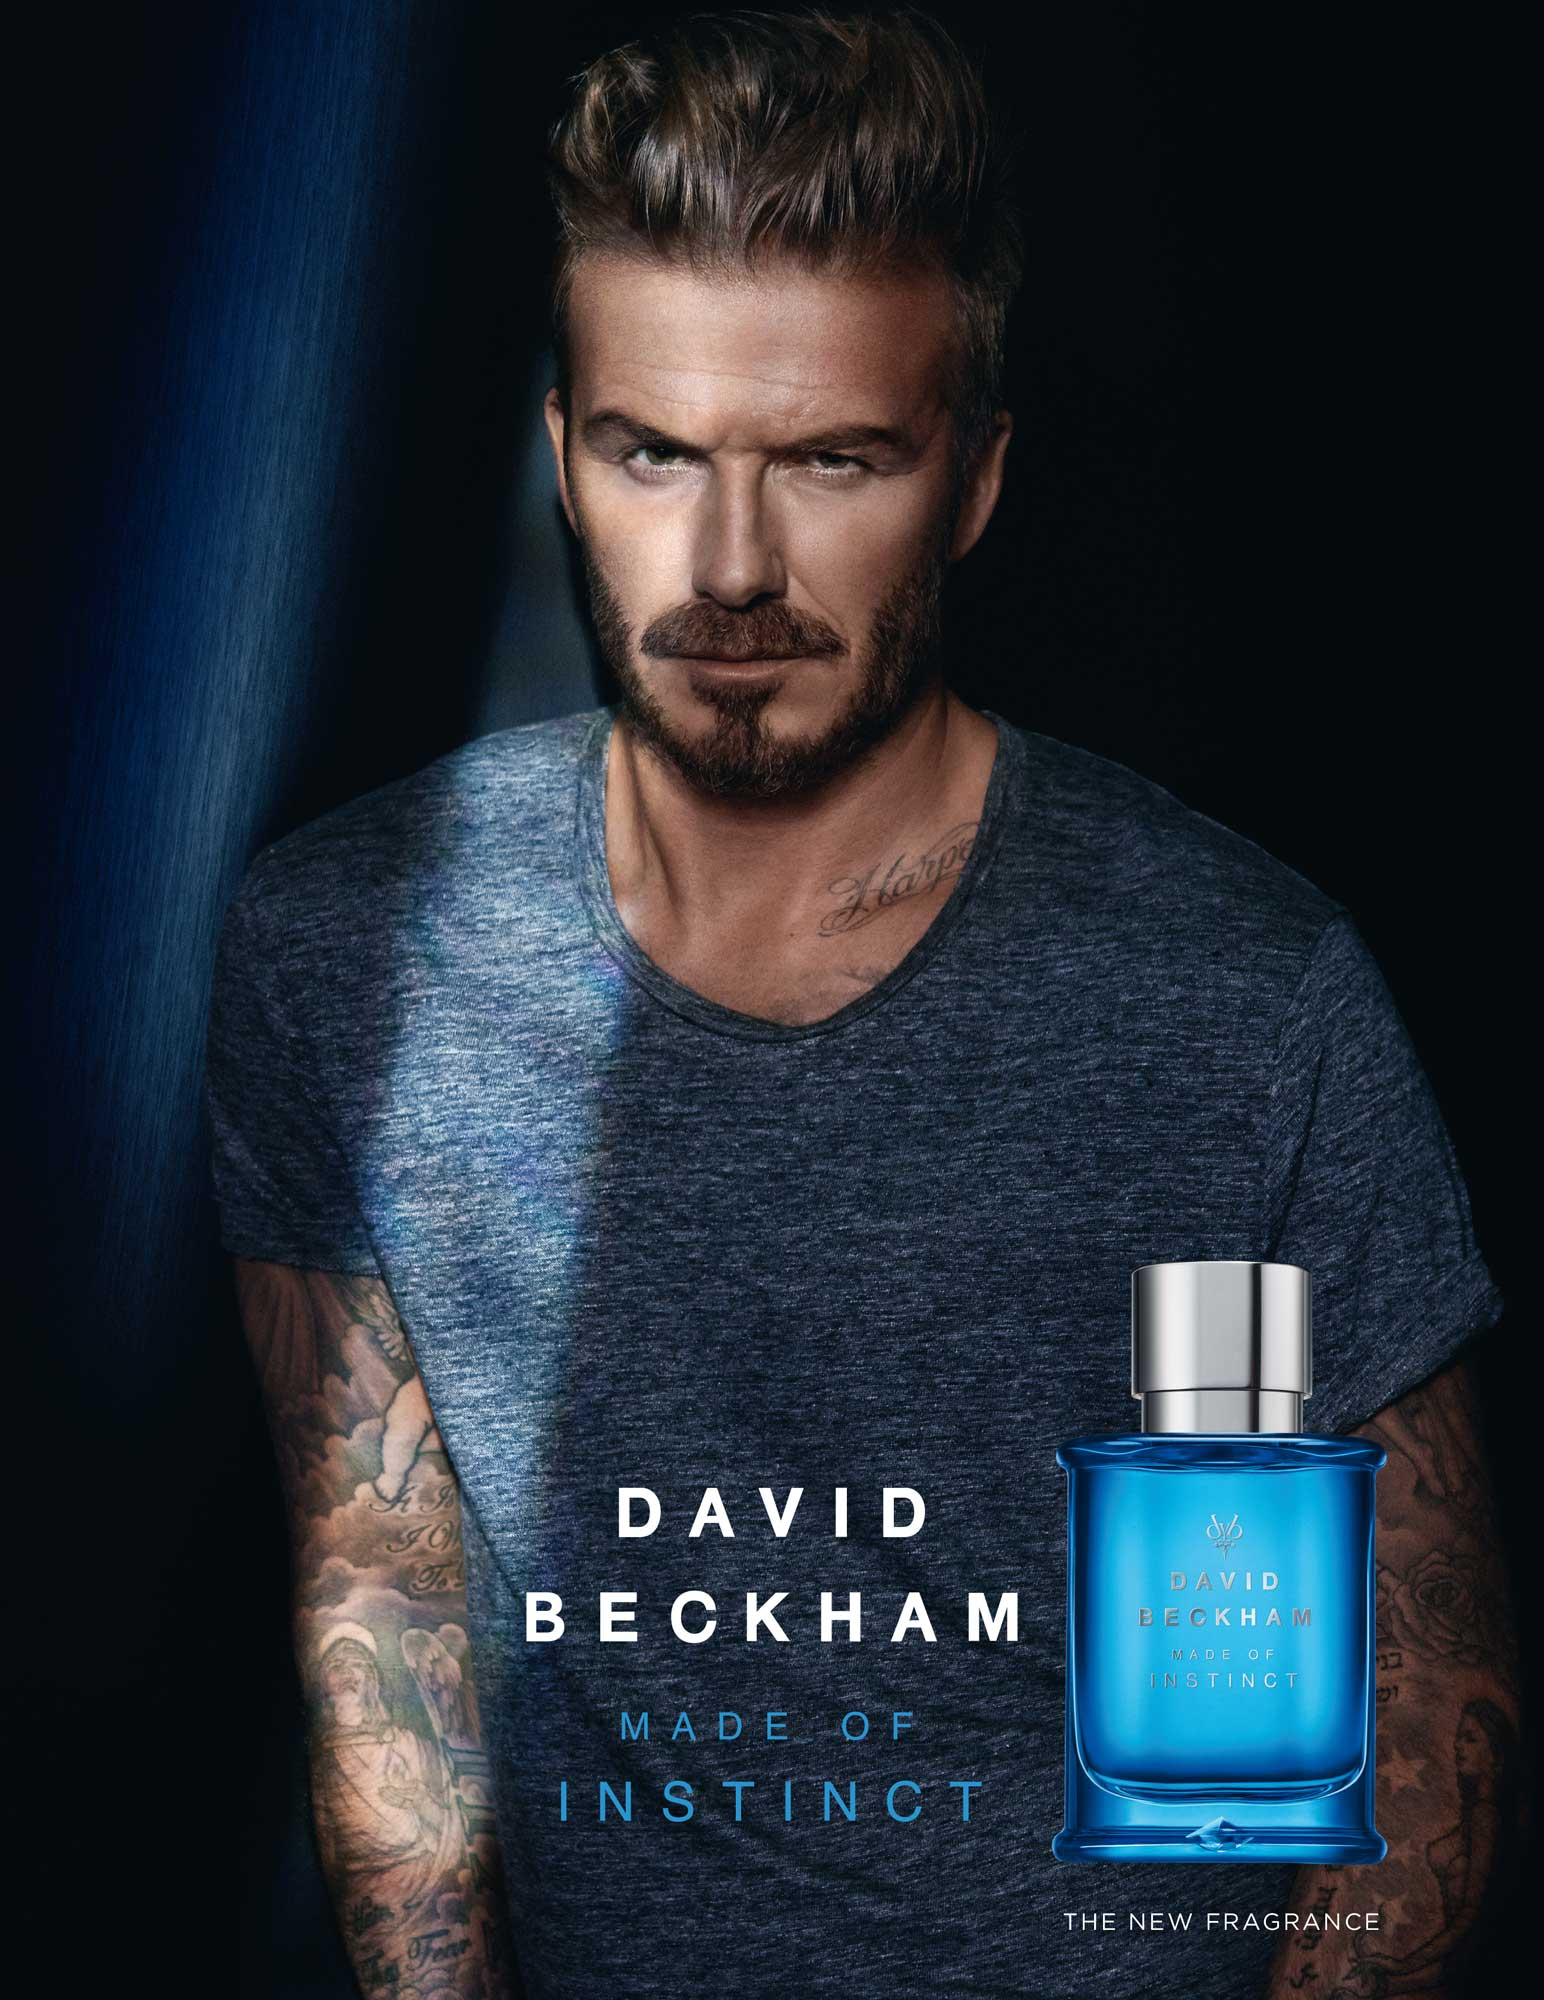 Made of instinct david beckham cologne a new fragrance for men 2017 for David beckham